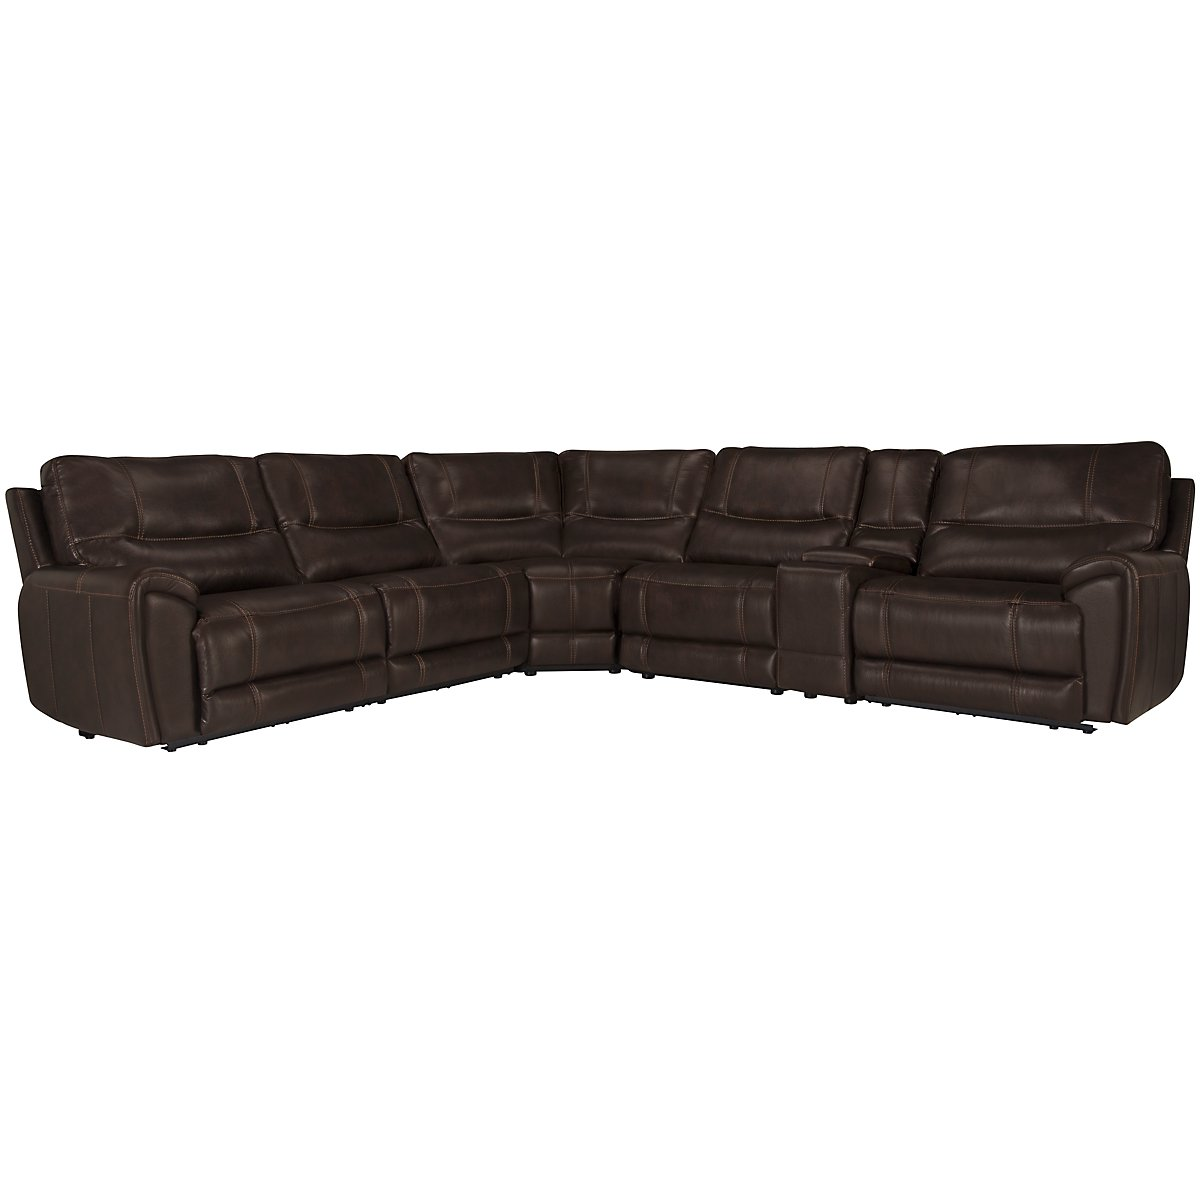 Nico Dk Brown Microfiber Small Two-Arm Power Reclining Sectional